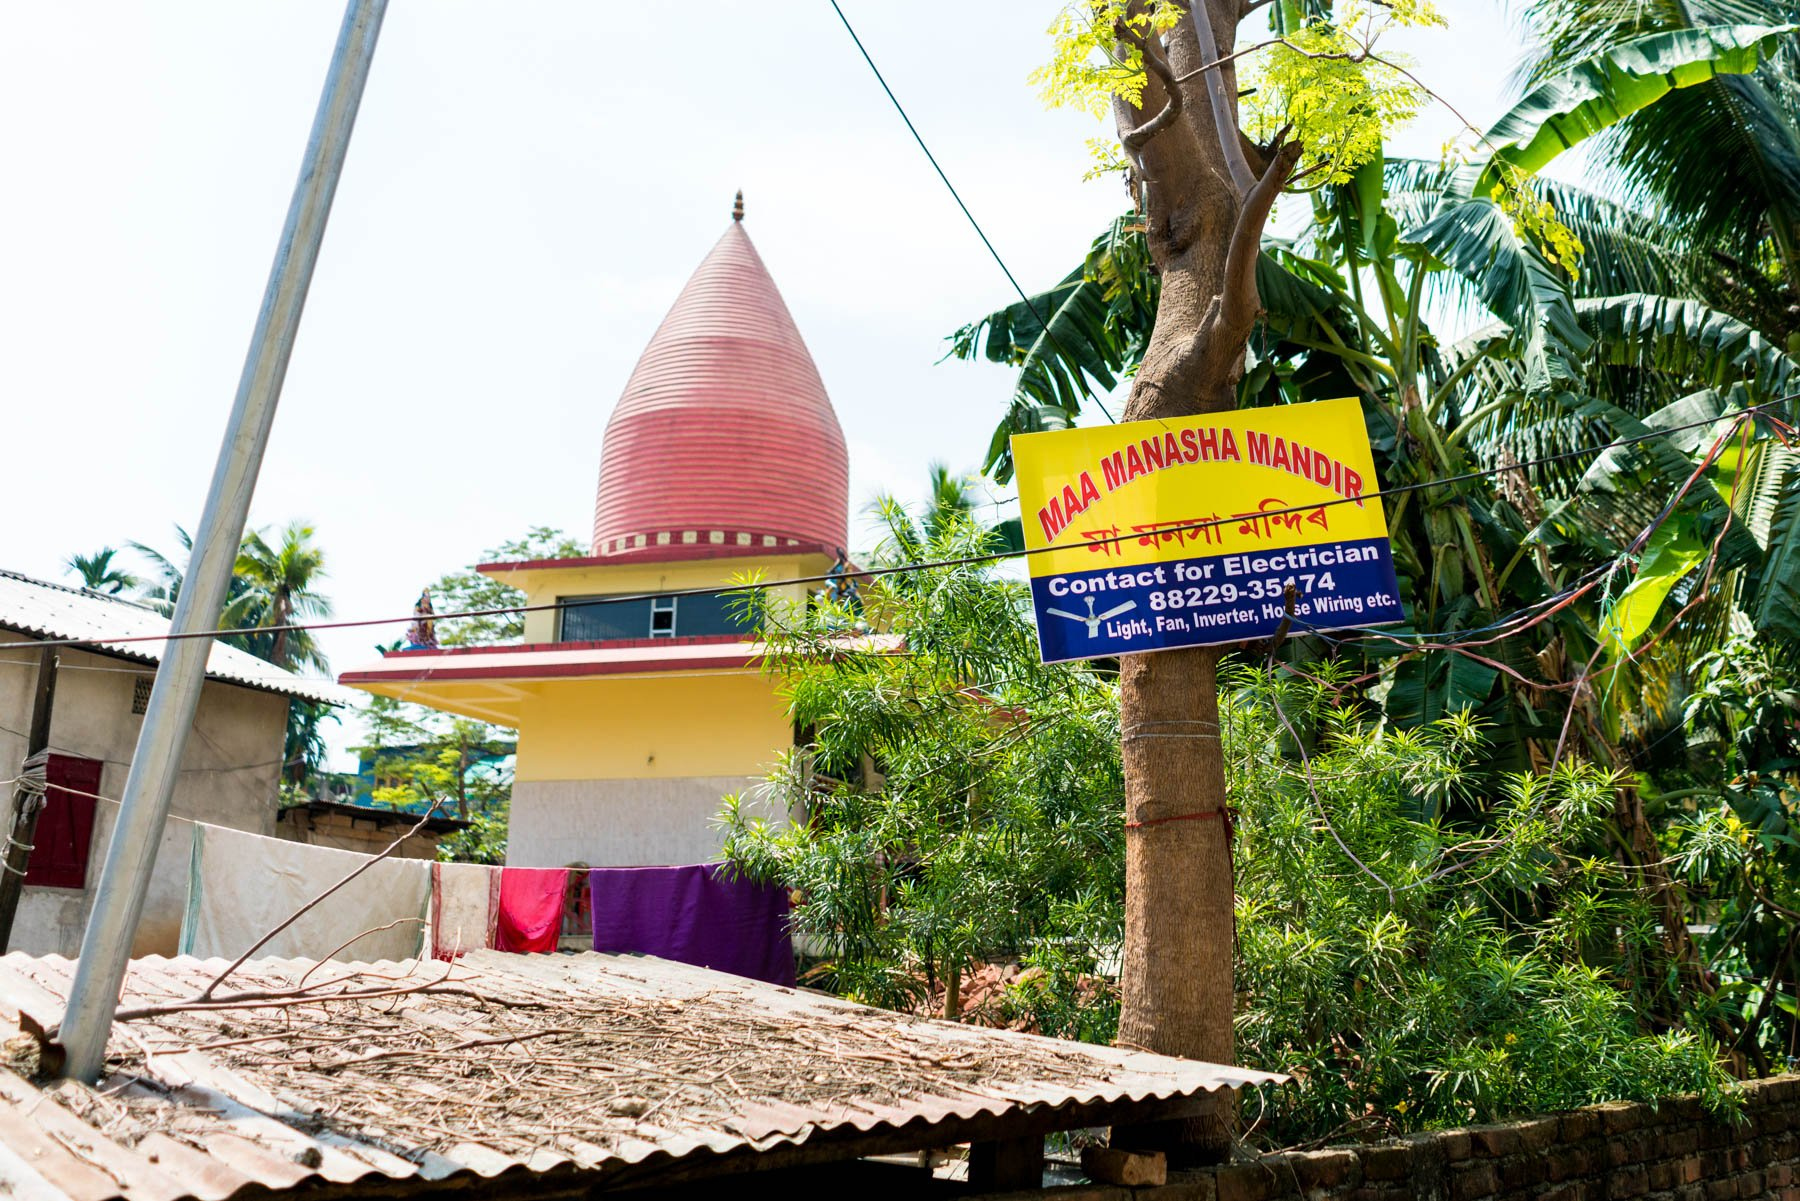 How to apply for an Arunachal Pradesh Protected Area Permit in Guwahati, Assam, India - Red domed Manasha Mandir in Guwahati, India - Lost With Purpose